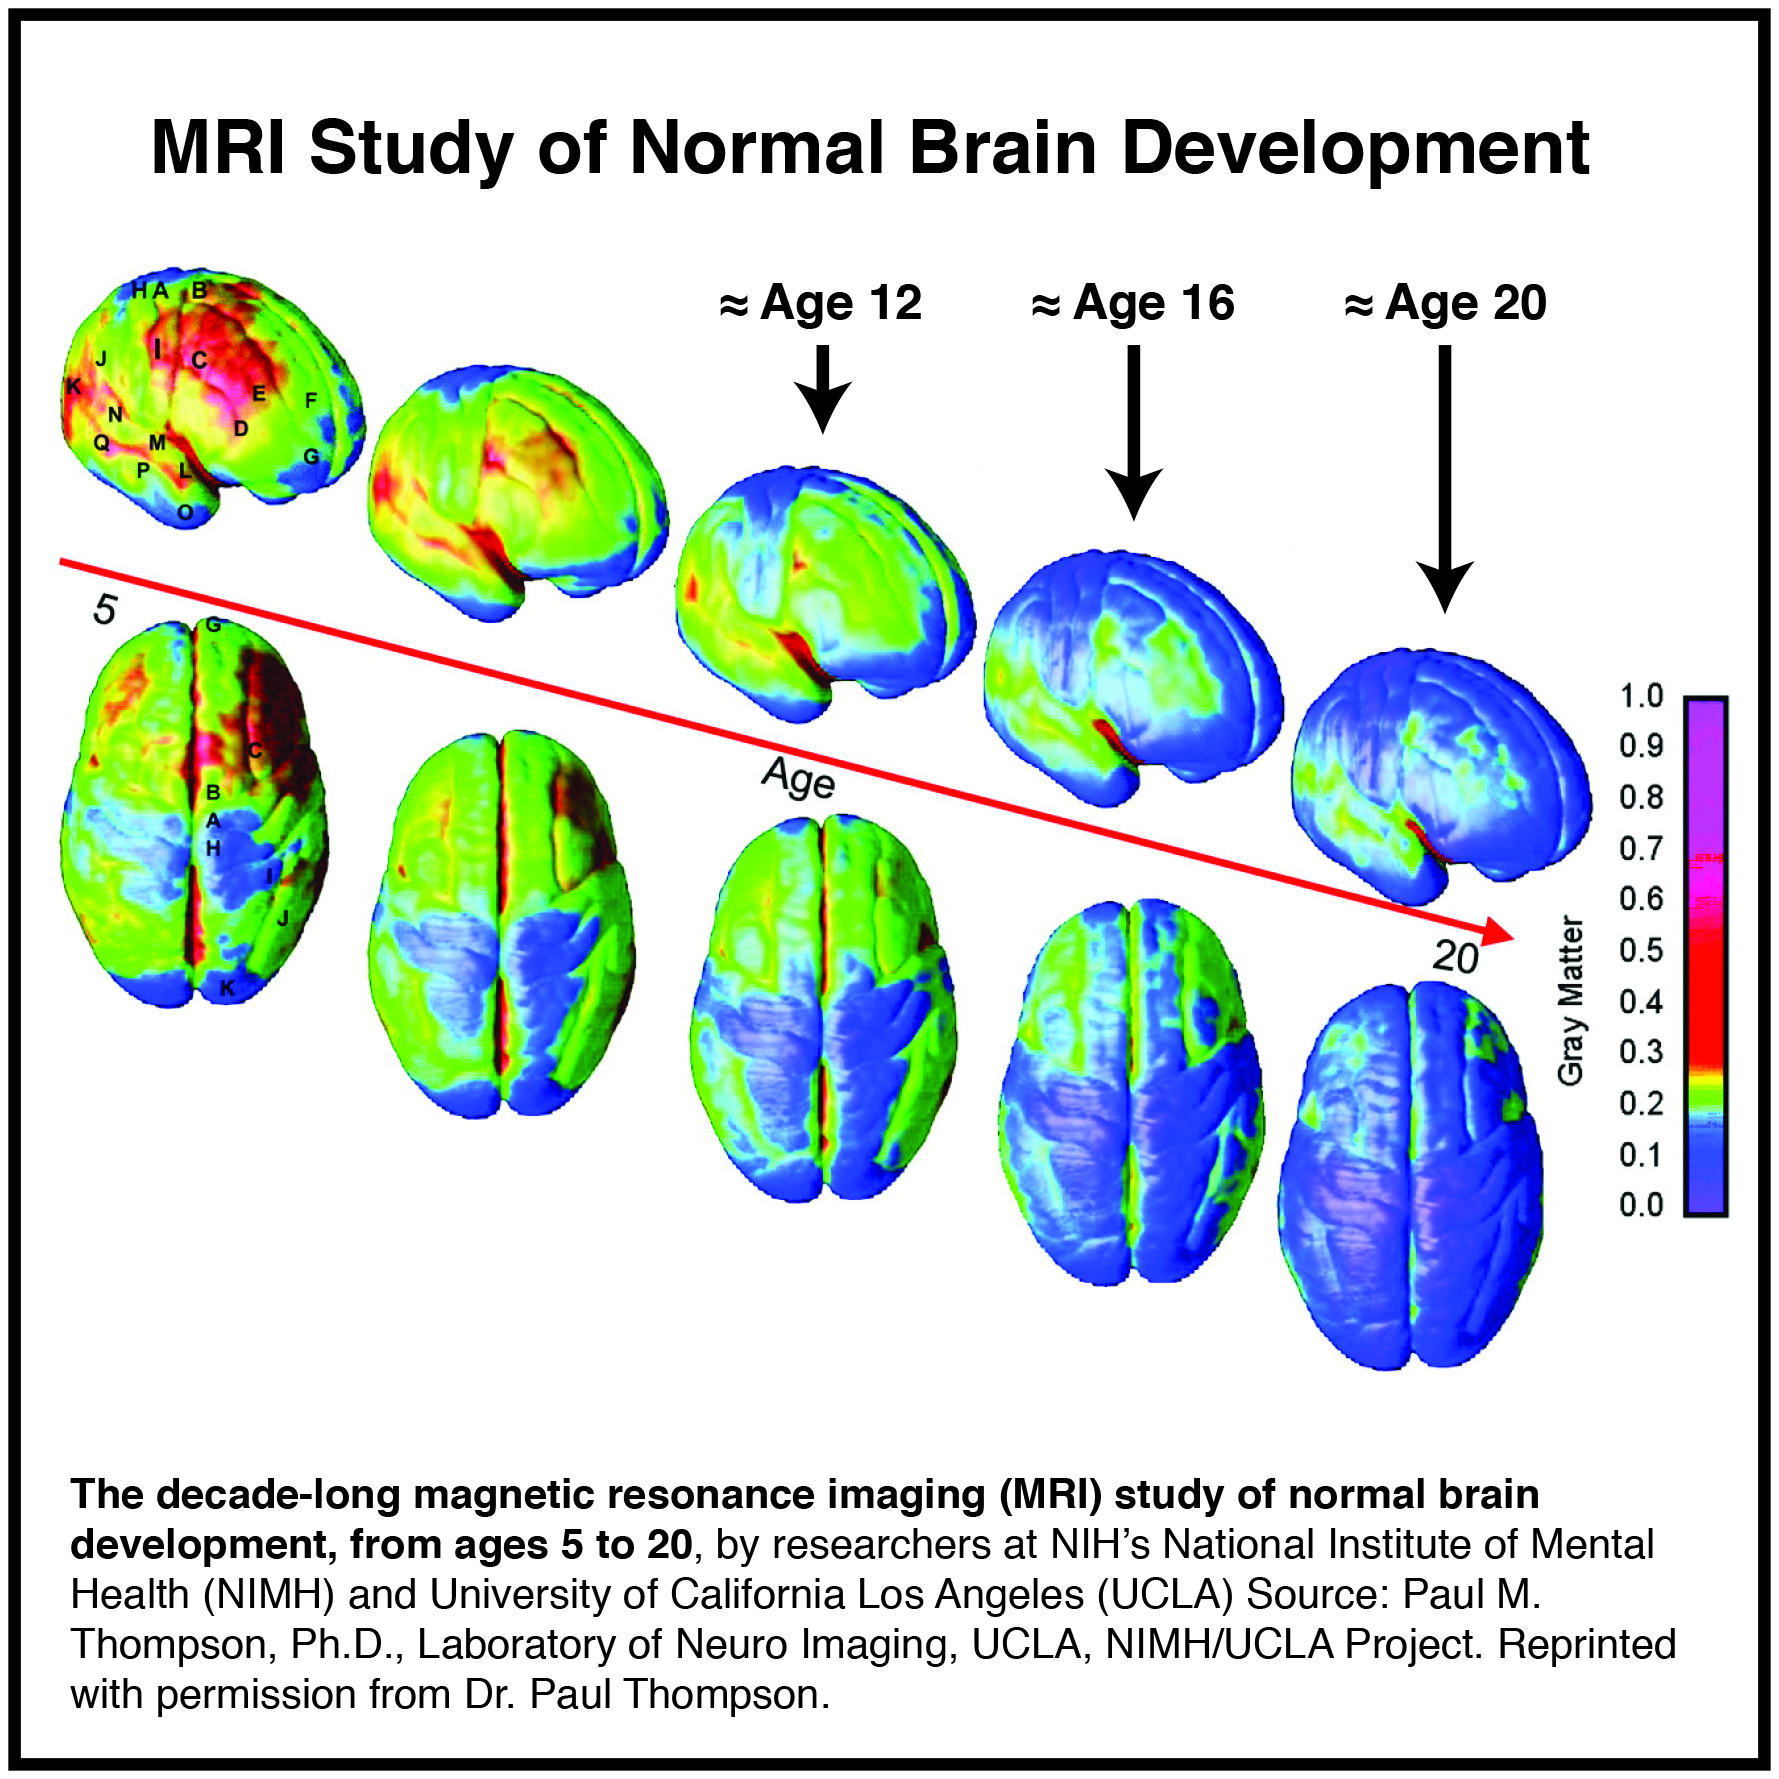 This image gives us a visual of the significant brain developmental changes occurring from ages 5 – 20. It's now understood this brain development continues through age 22 on average for girls/women and 24 on average for boys/men.